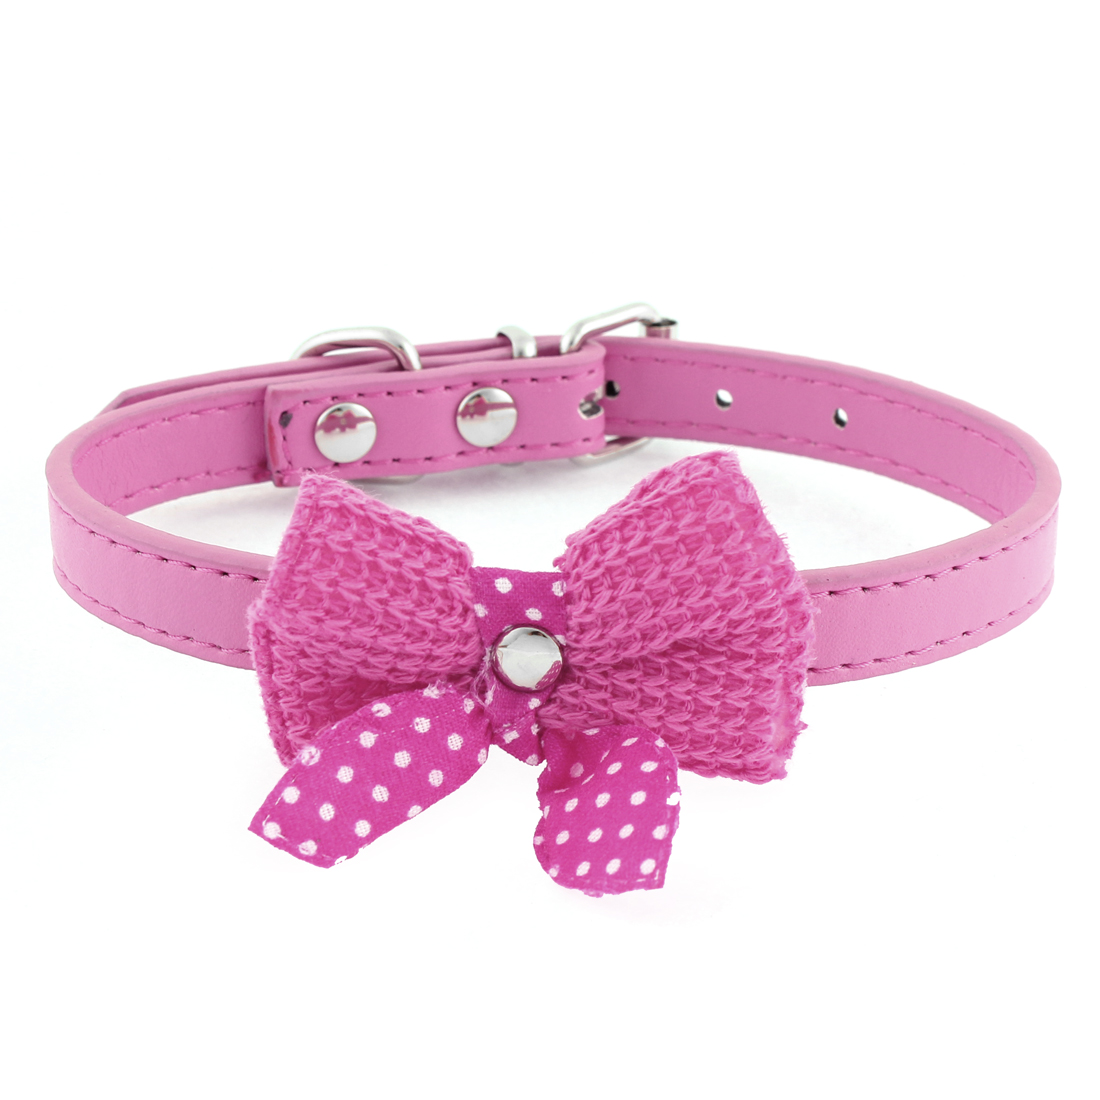 Single Pin Buckle Bow Bowknot Detail Pet Dog Kitty Collar 27-33cm Fuchsia